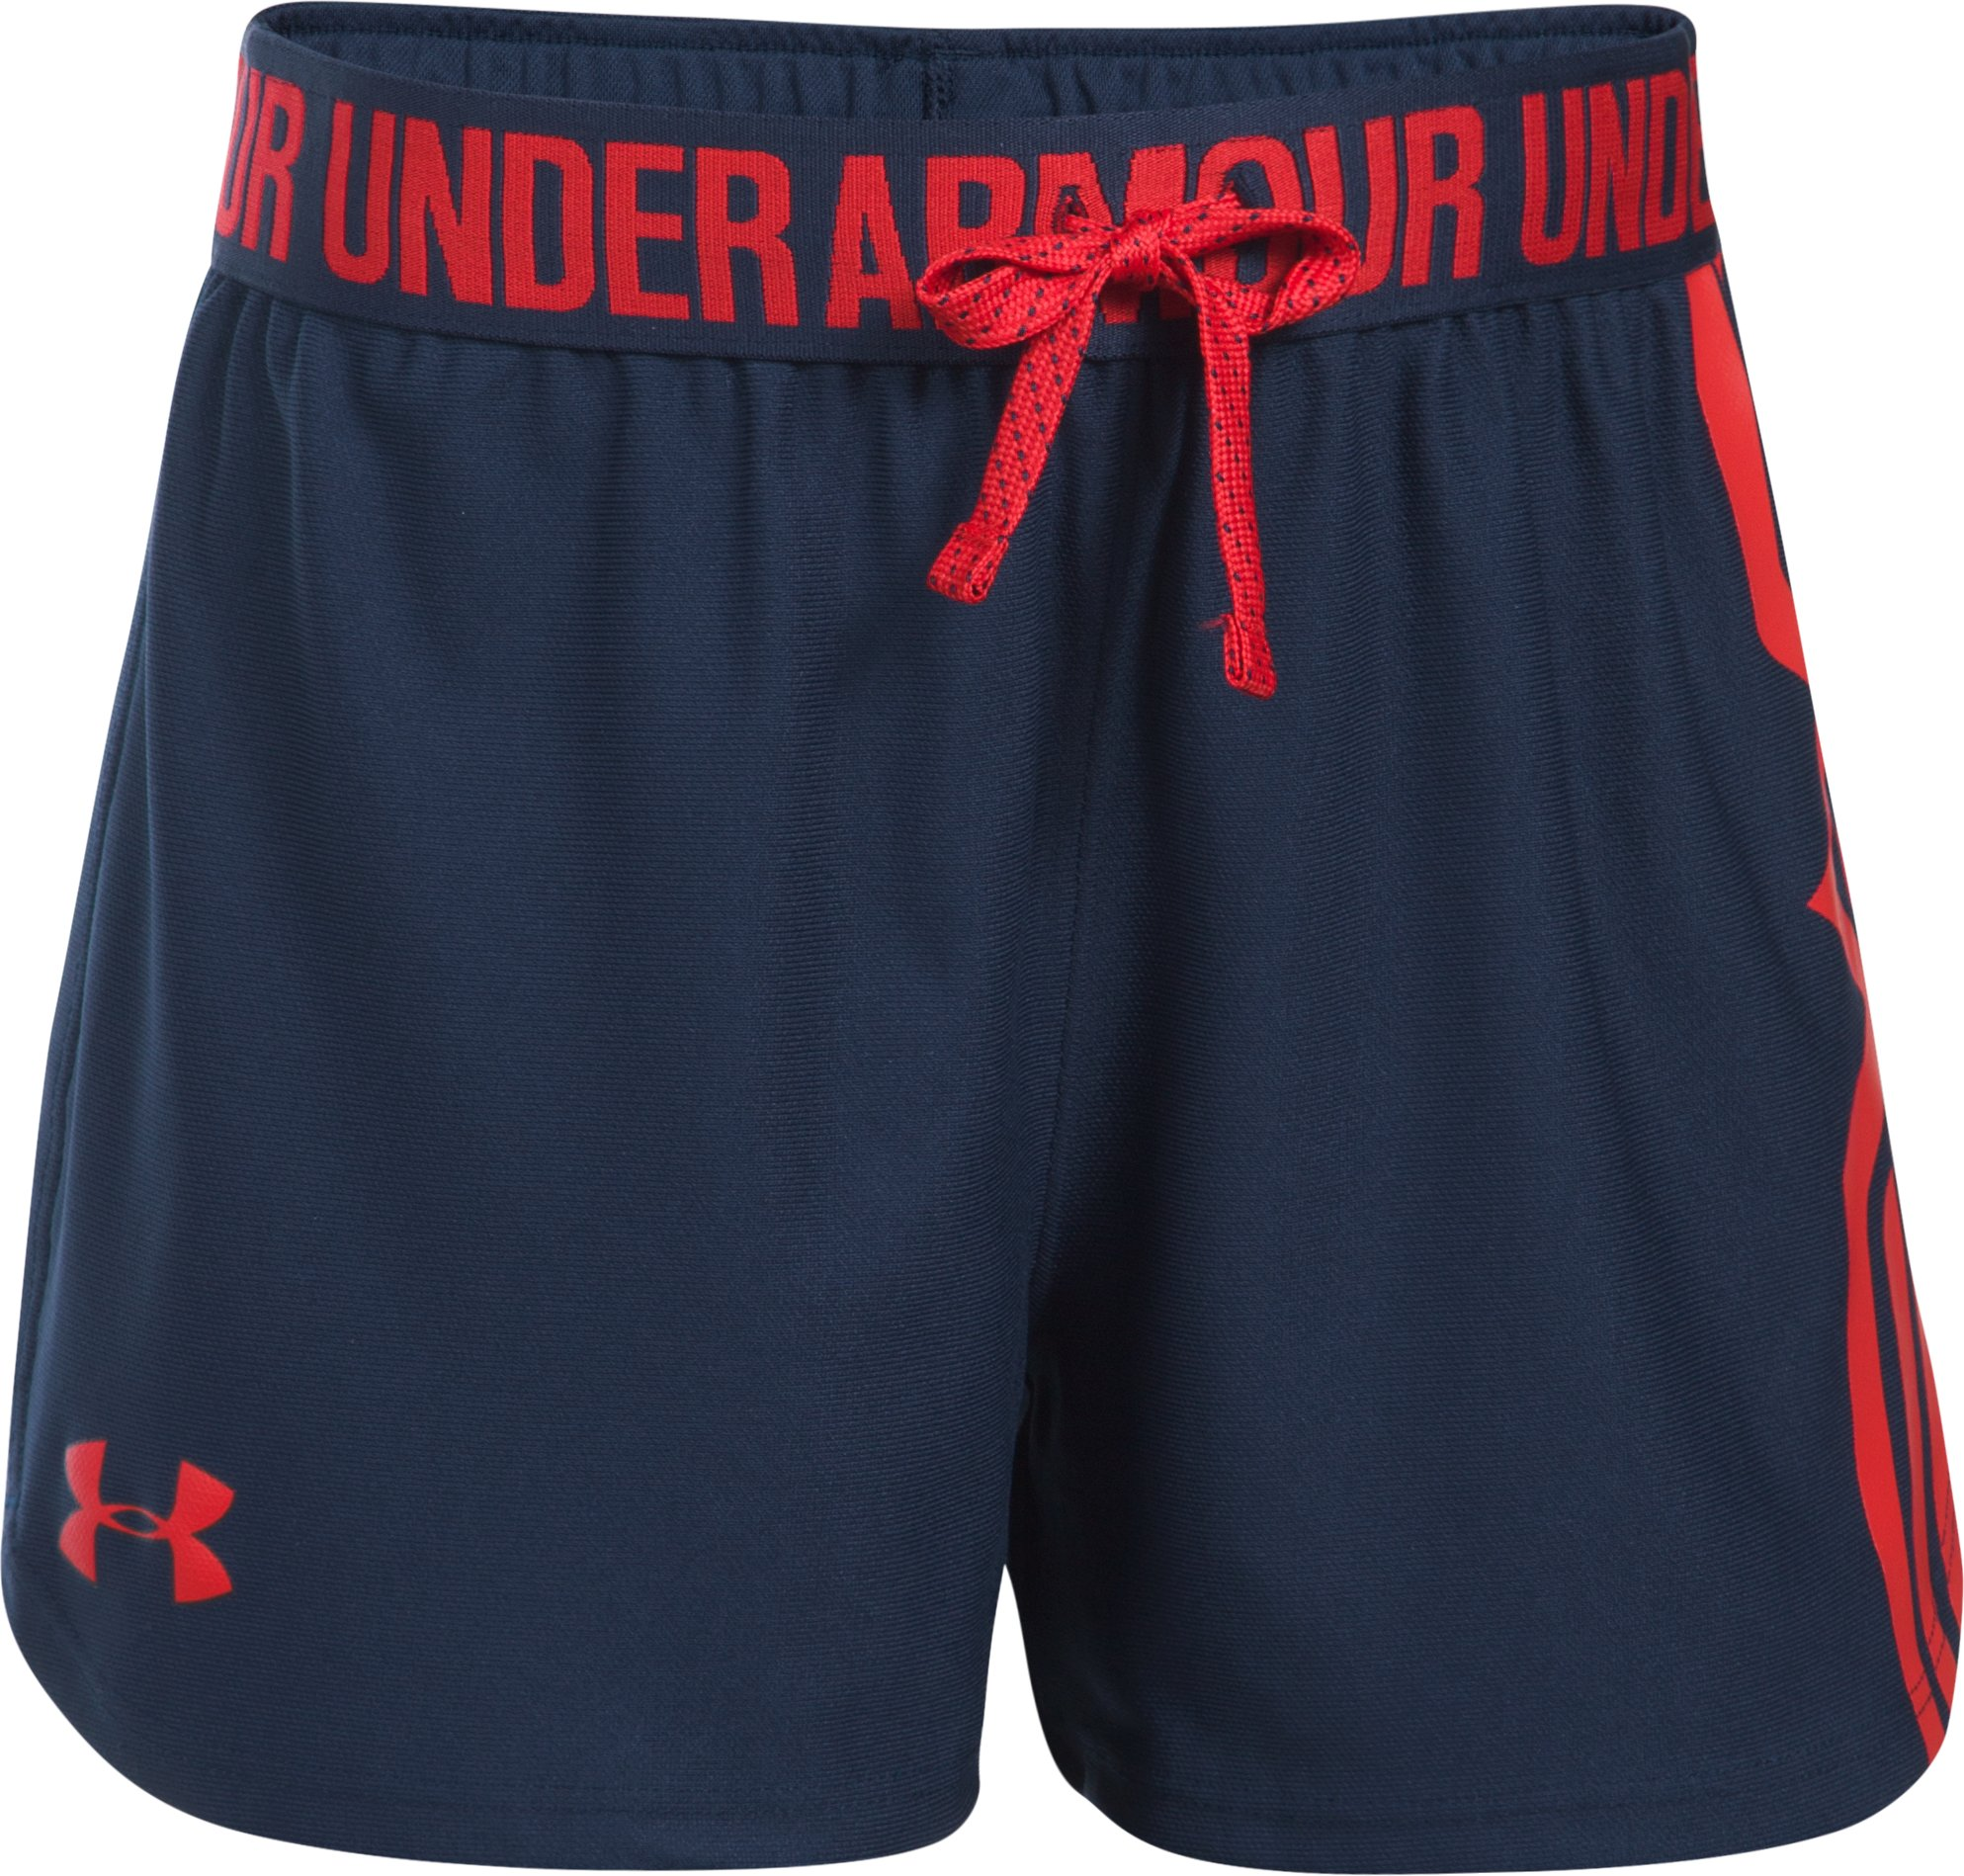 Girls' Under Armour® Alter Ego Wonder Woman Play Up Shorts, Midnight Navy